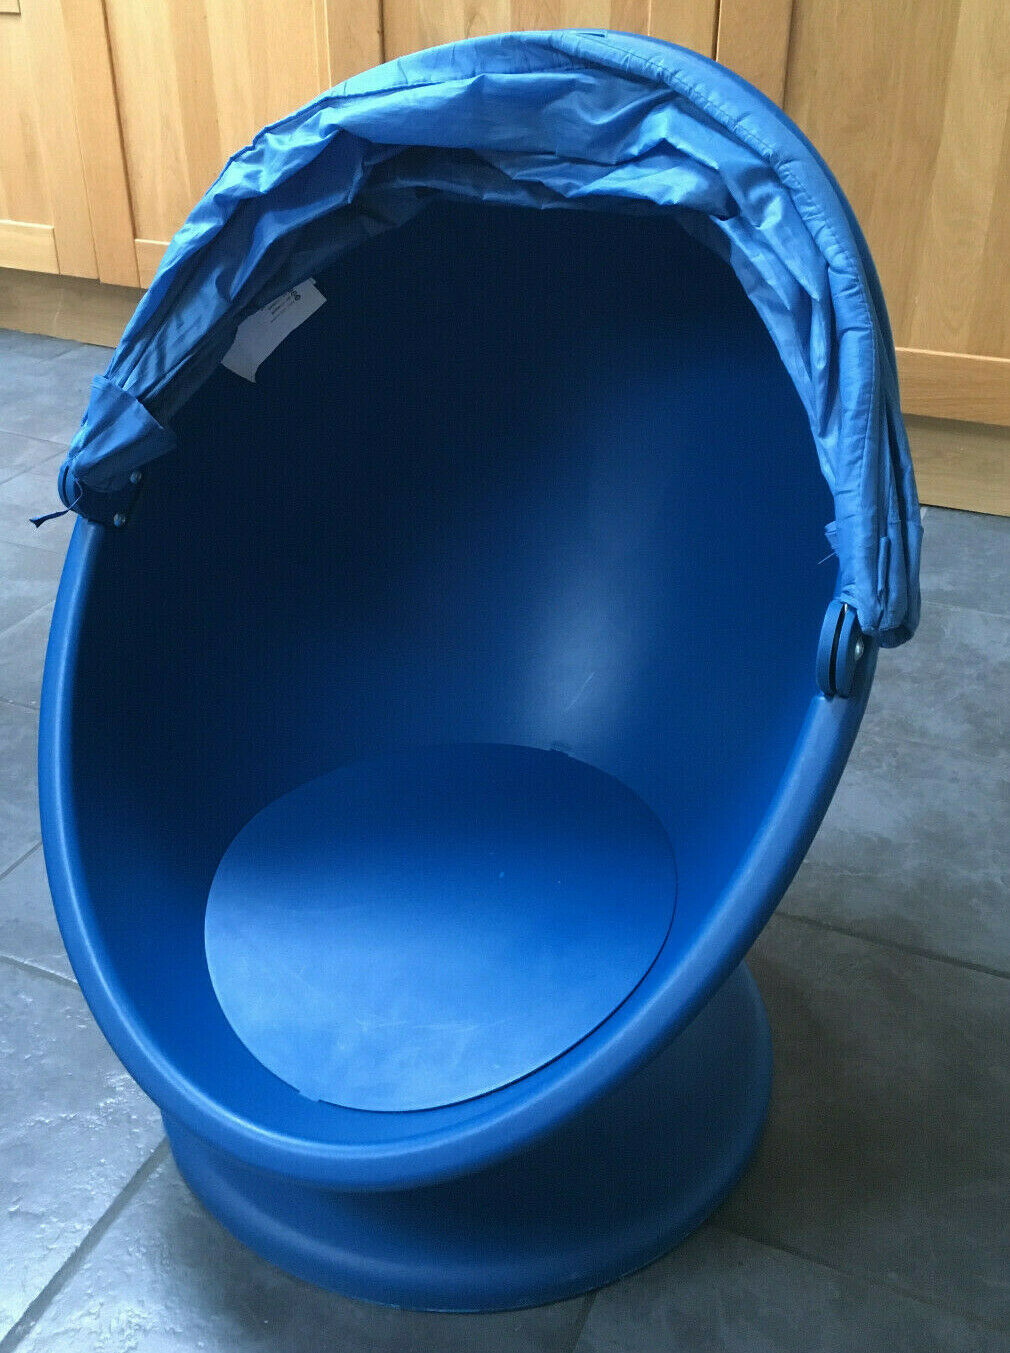 Ikea Lomsk Blue Egg Swivel Chair with